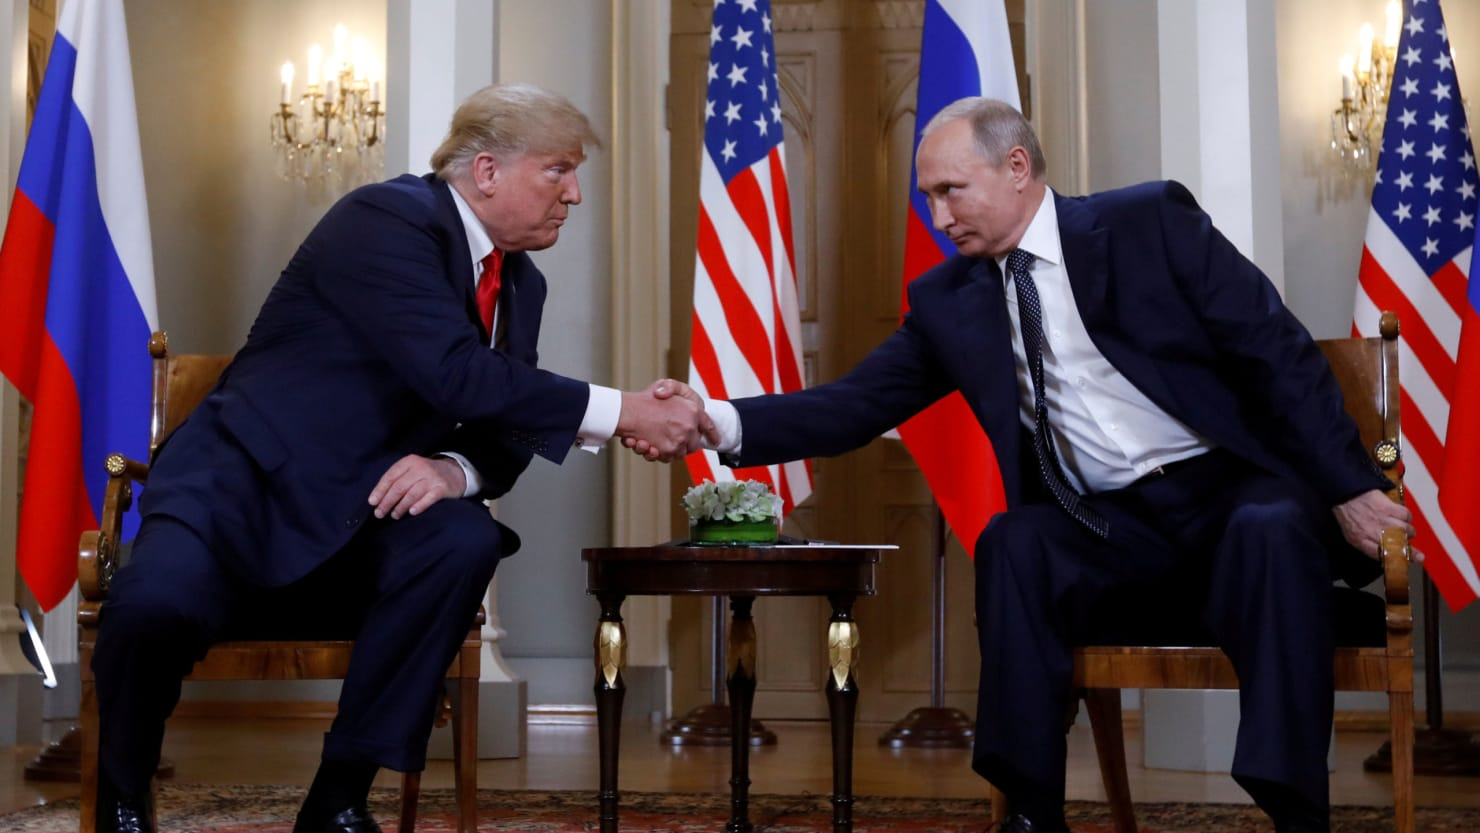 Trump Concealed Details of Encounters With Putin From Senior Officials: Report